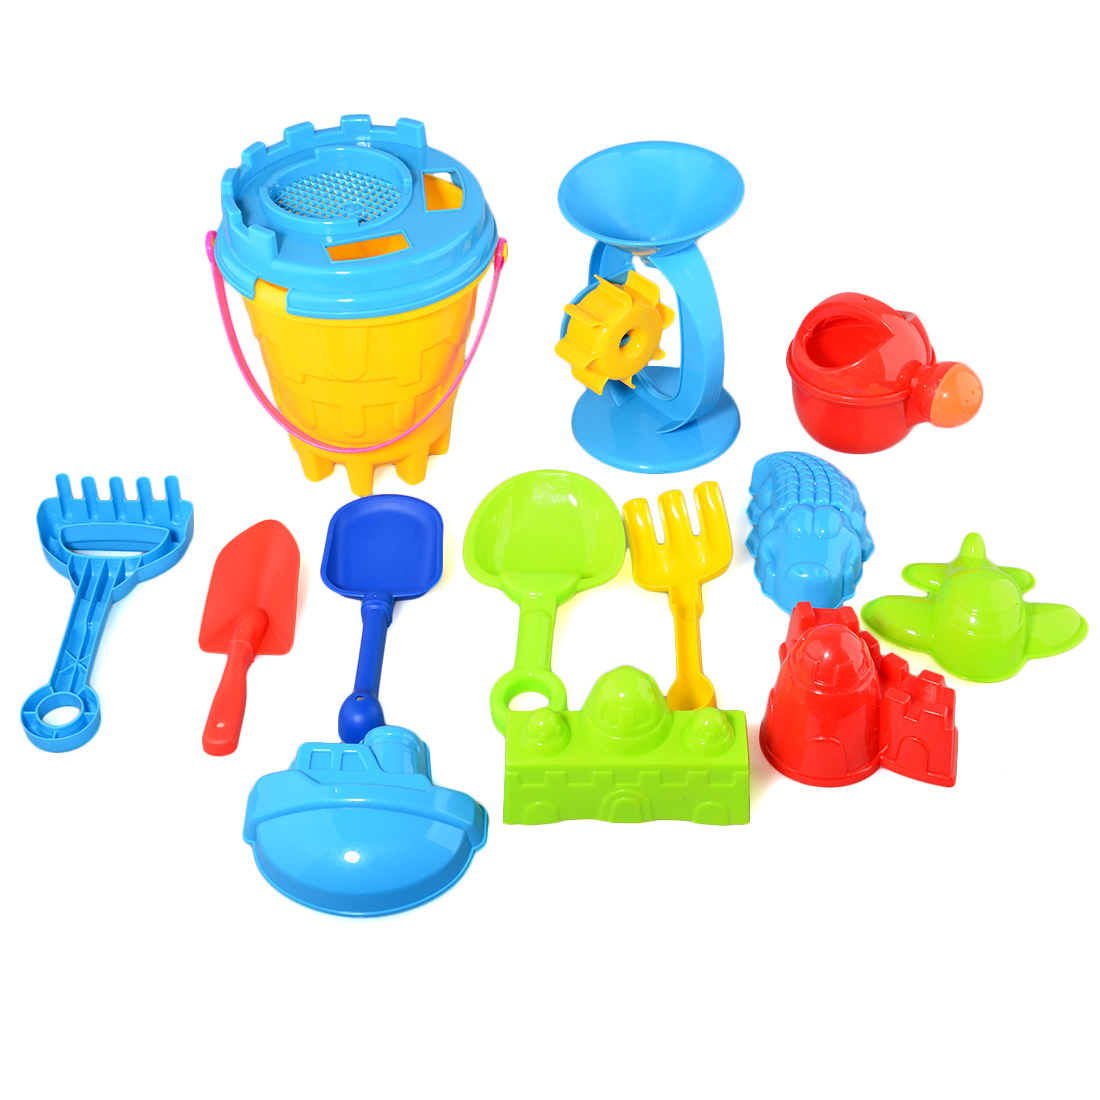 25 Pcs Set  Beach Sand Toy Set Bucket Shovels Rakes Sand Wheel Watering Can Molds Toys For Children